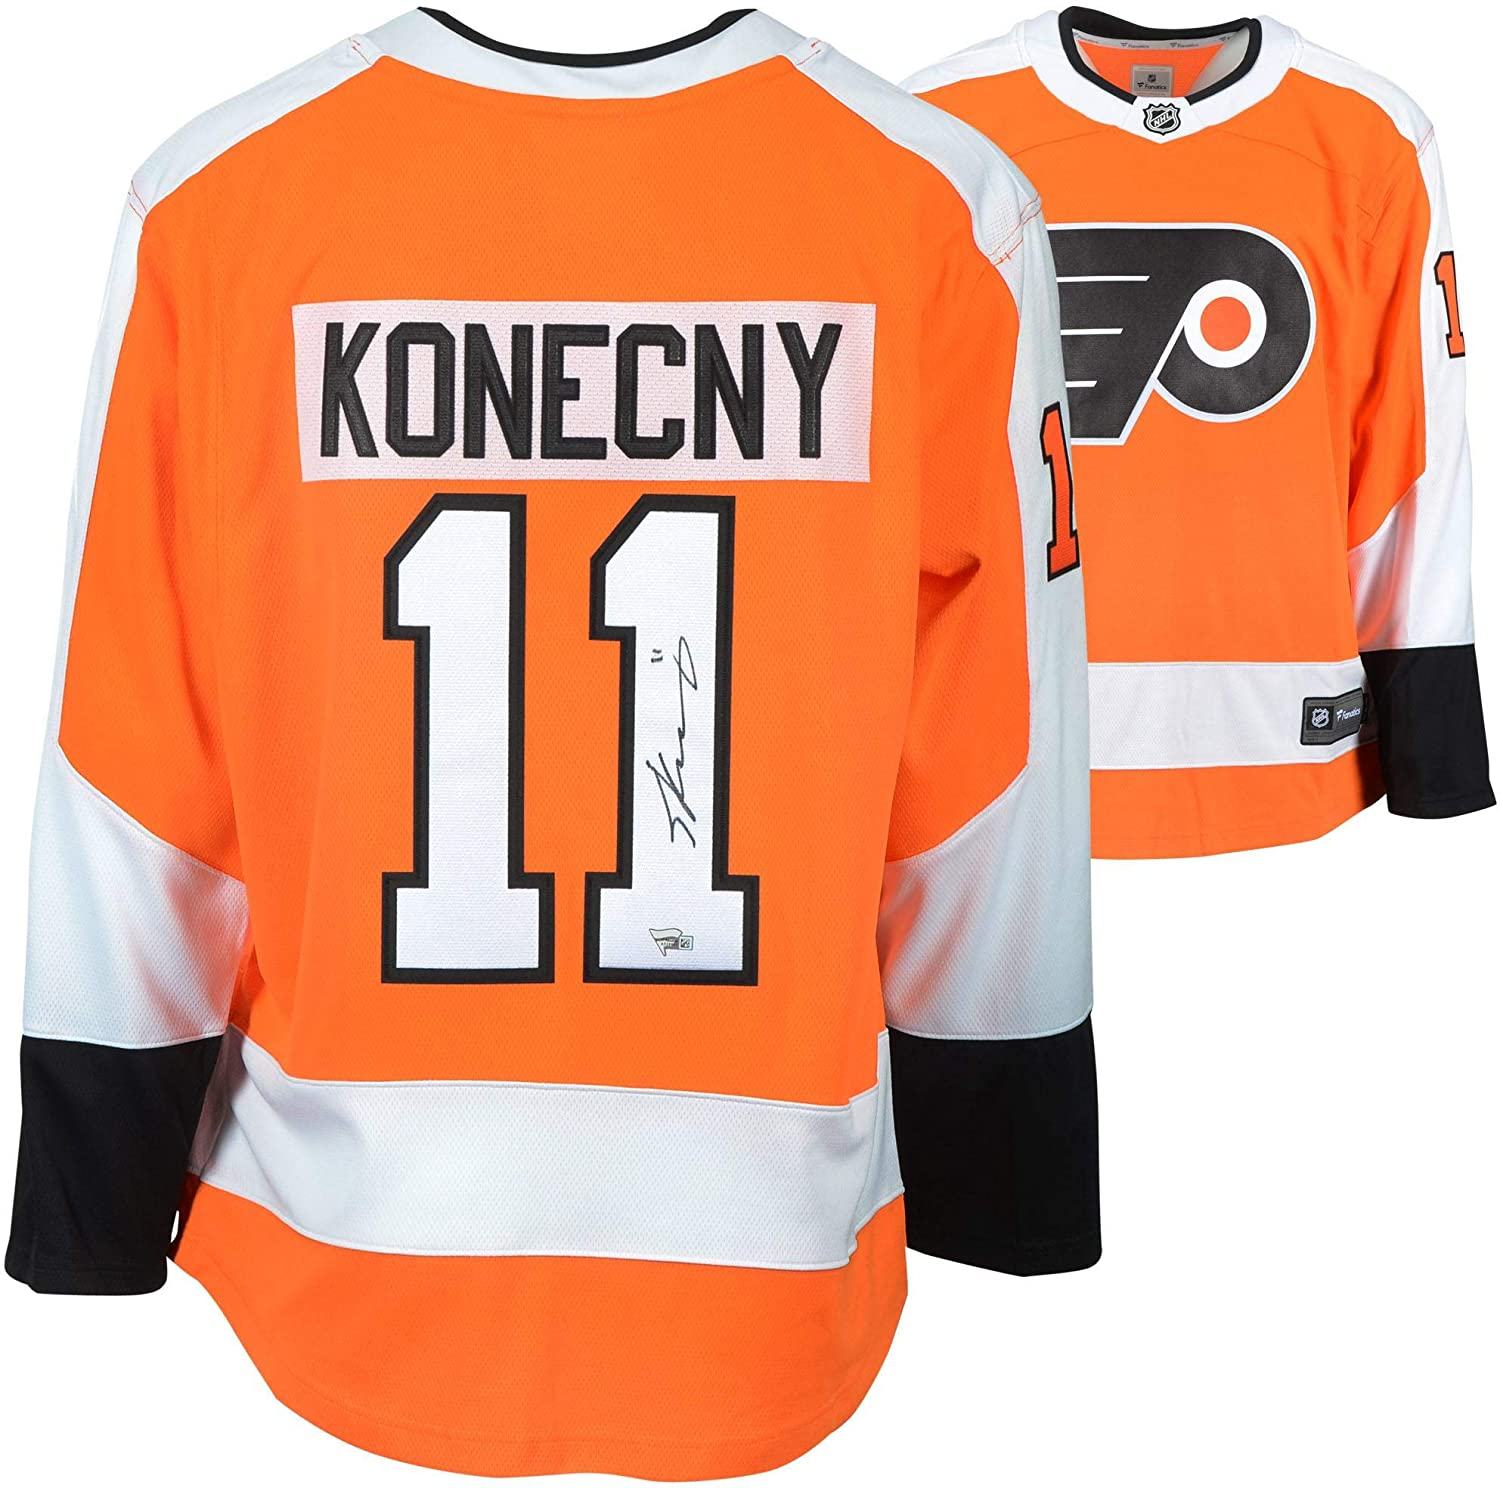 size 40 7b318 8ef0e Travis Konecny Philadelphia Flyers Autographed Orange ...